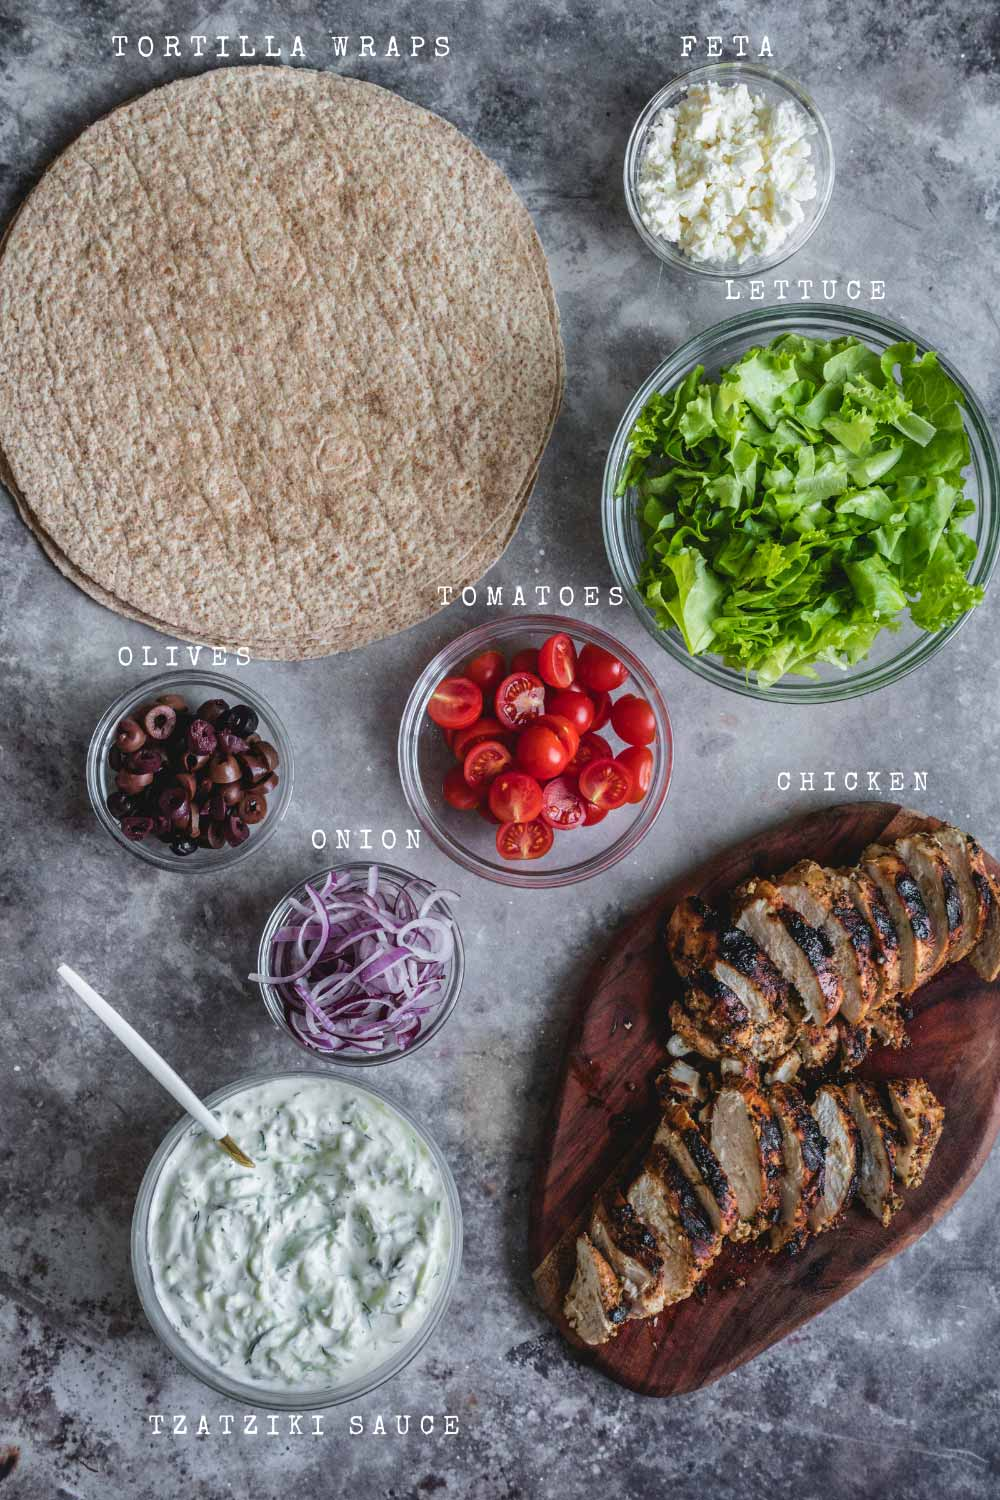 Ingredients of the wraps